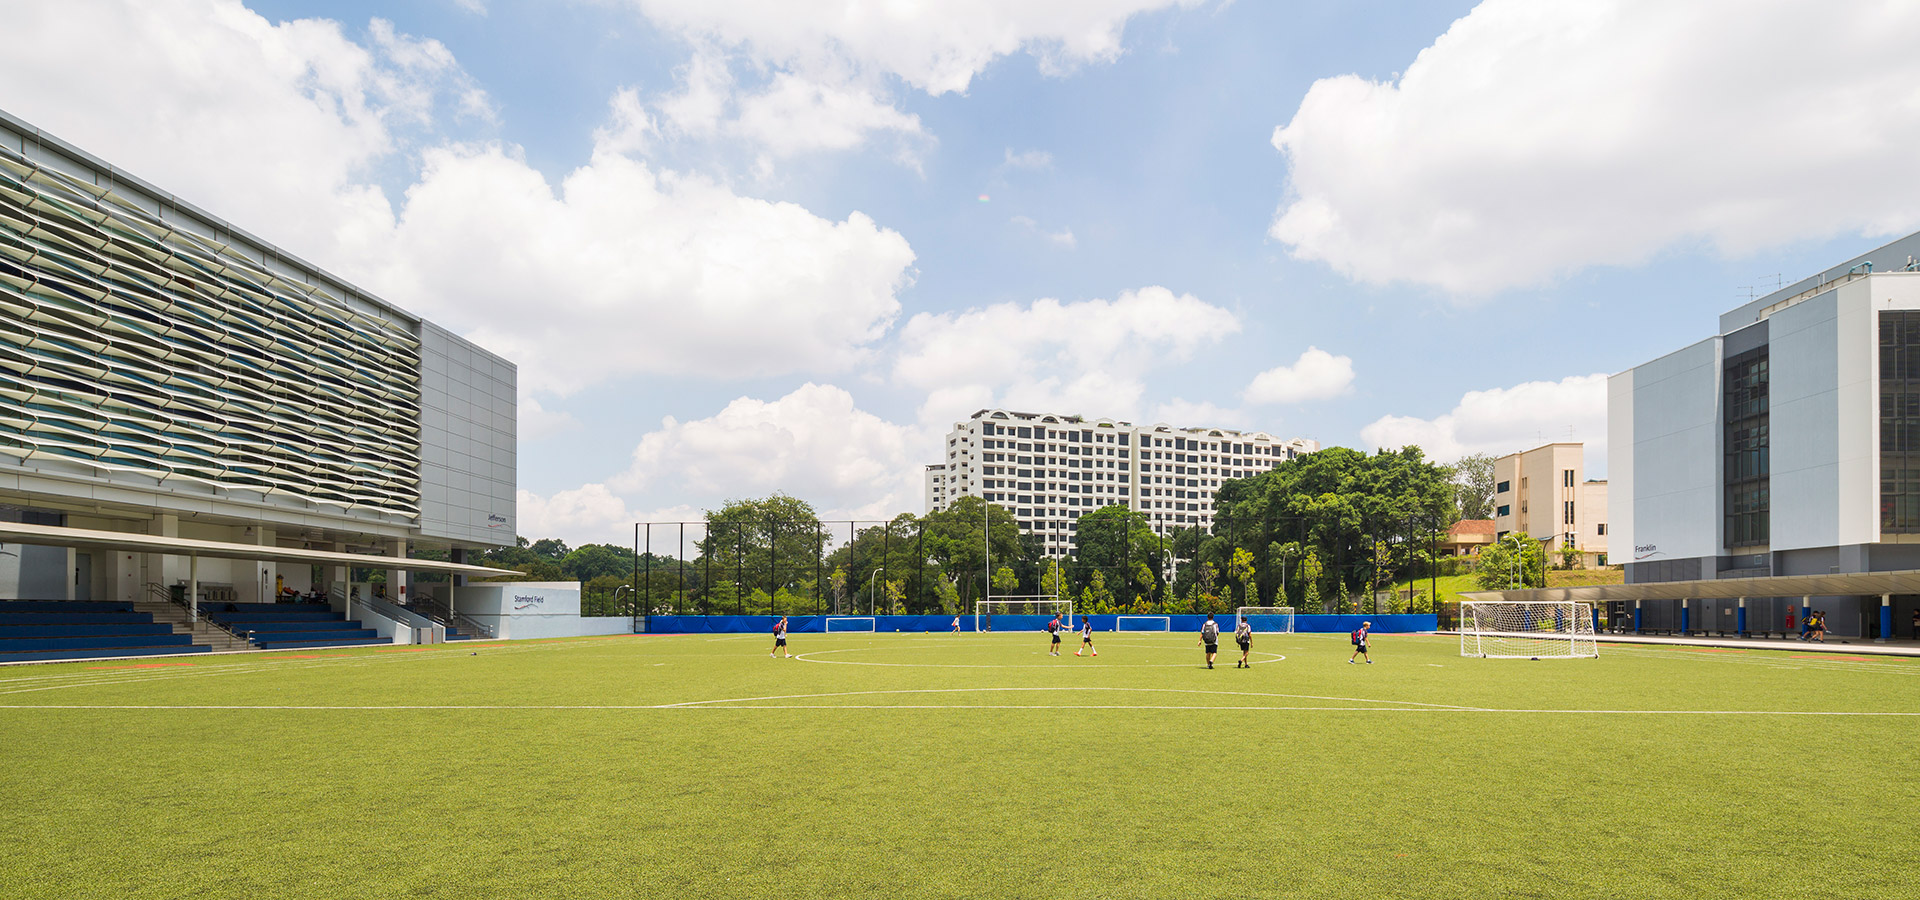 Big sports field. Photo: SAIS